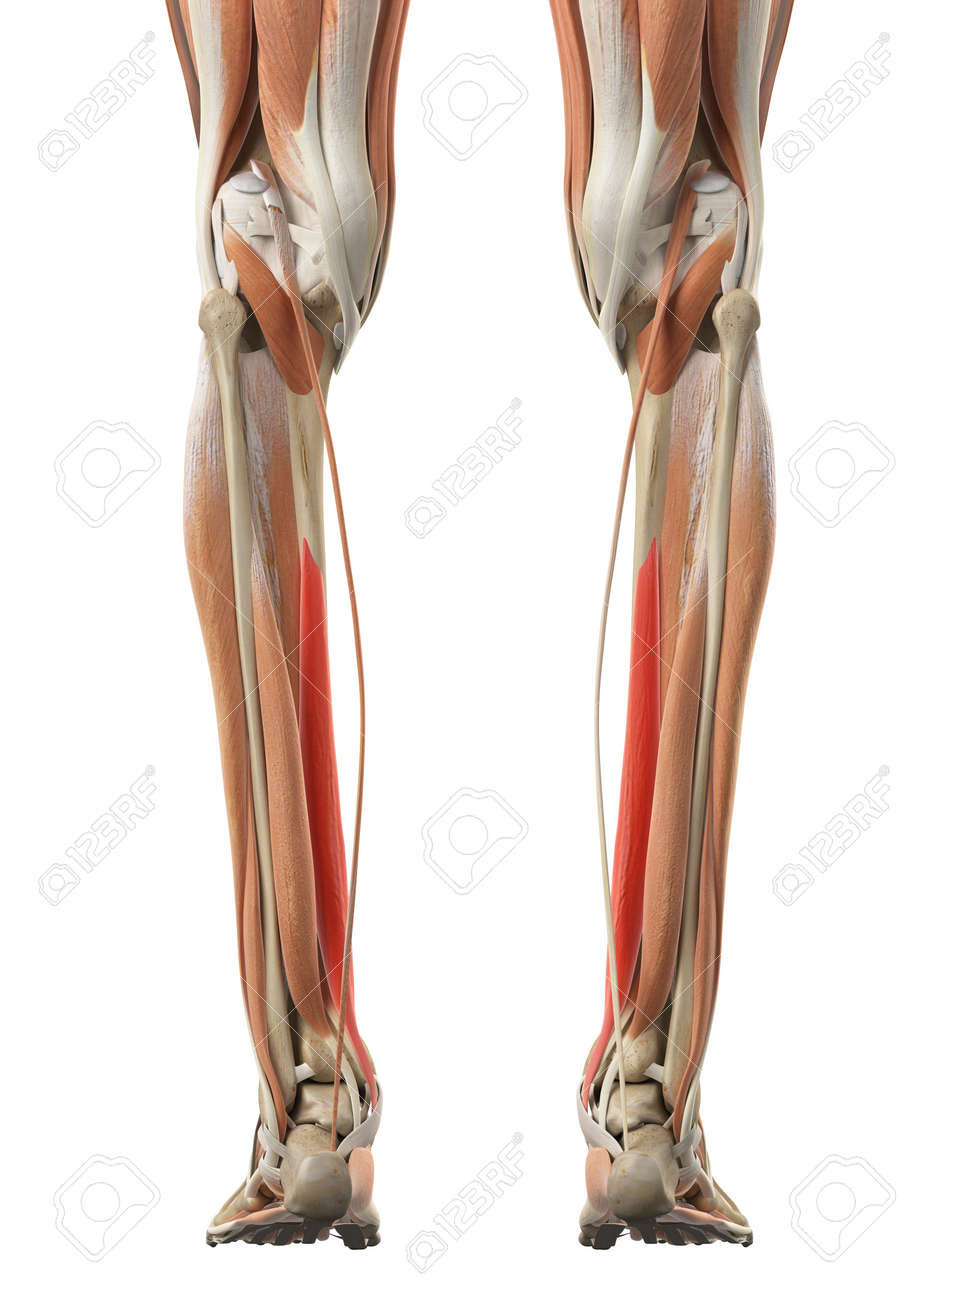 Medically Accurate Illustration Of The Flexor Digitorum Longus Stock